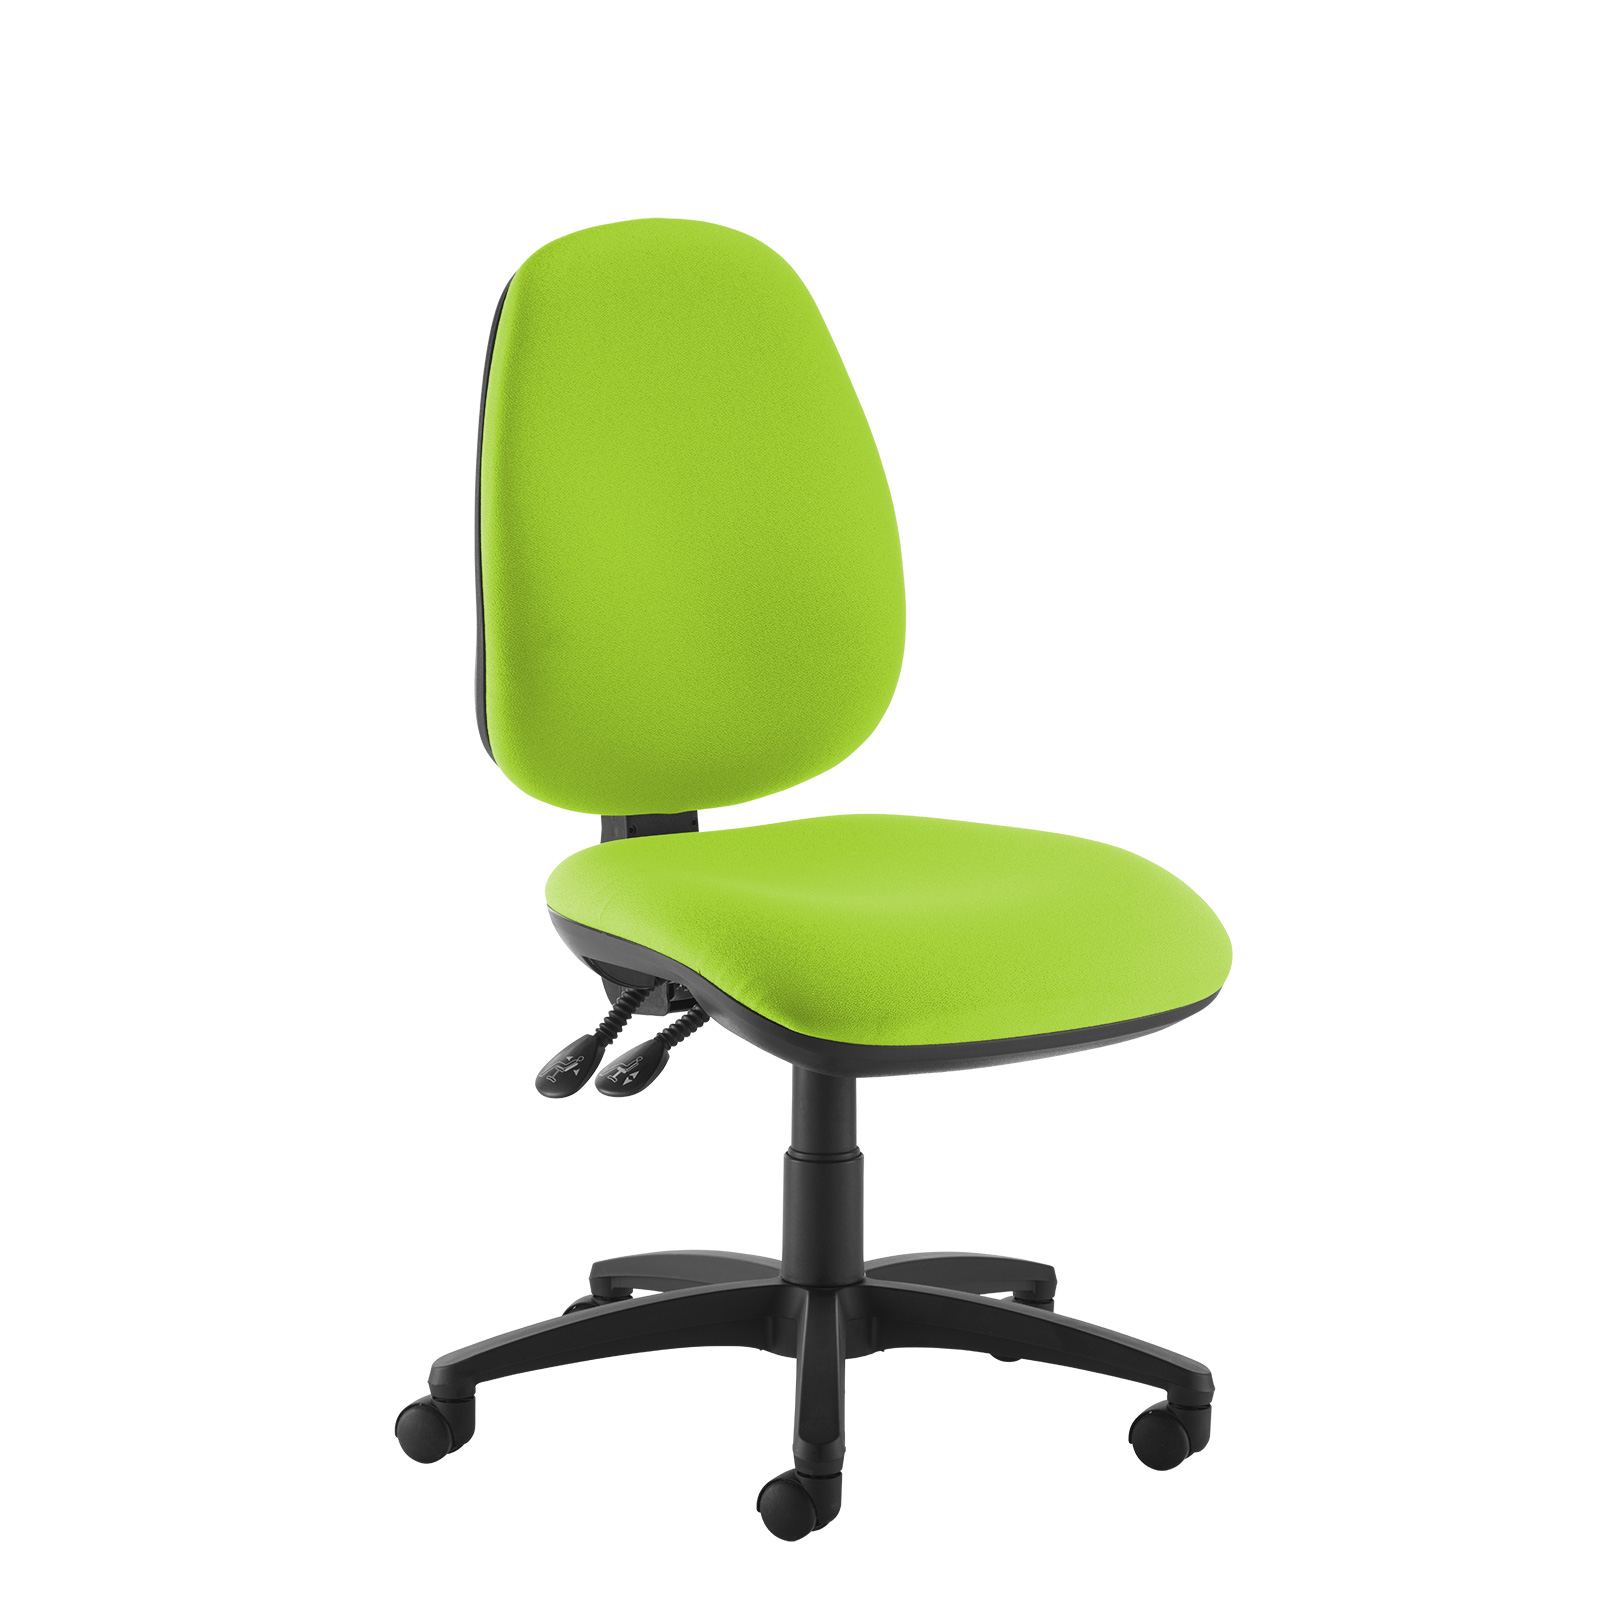 Desk Chairs Jota high back operator chair with no arms - green